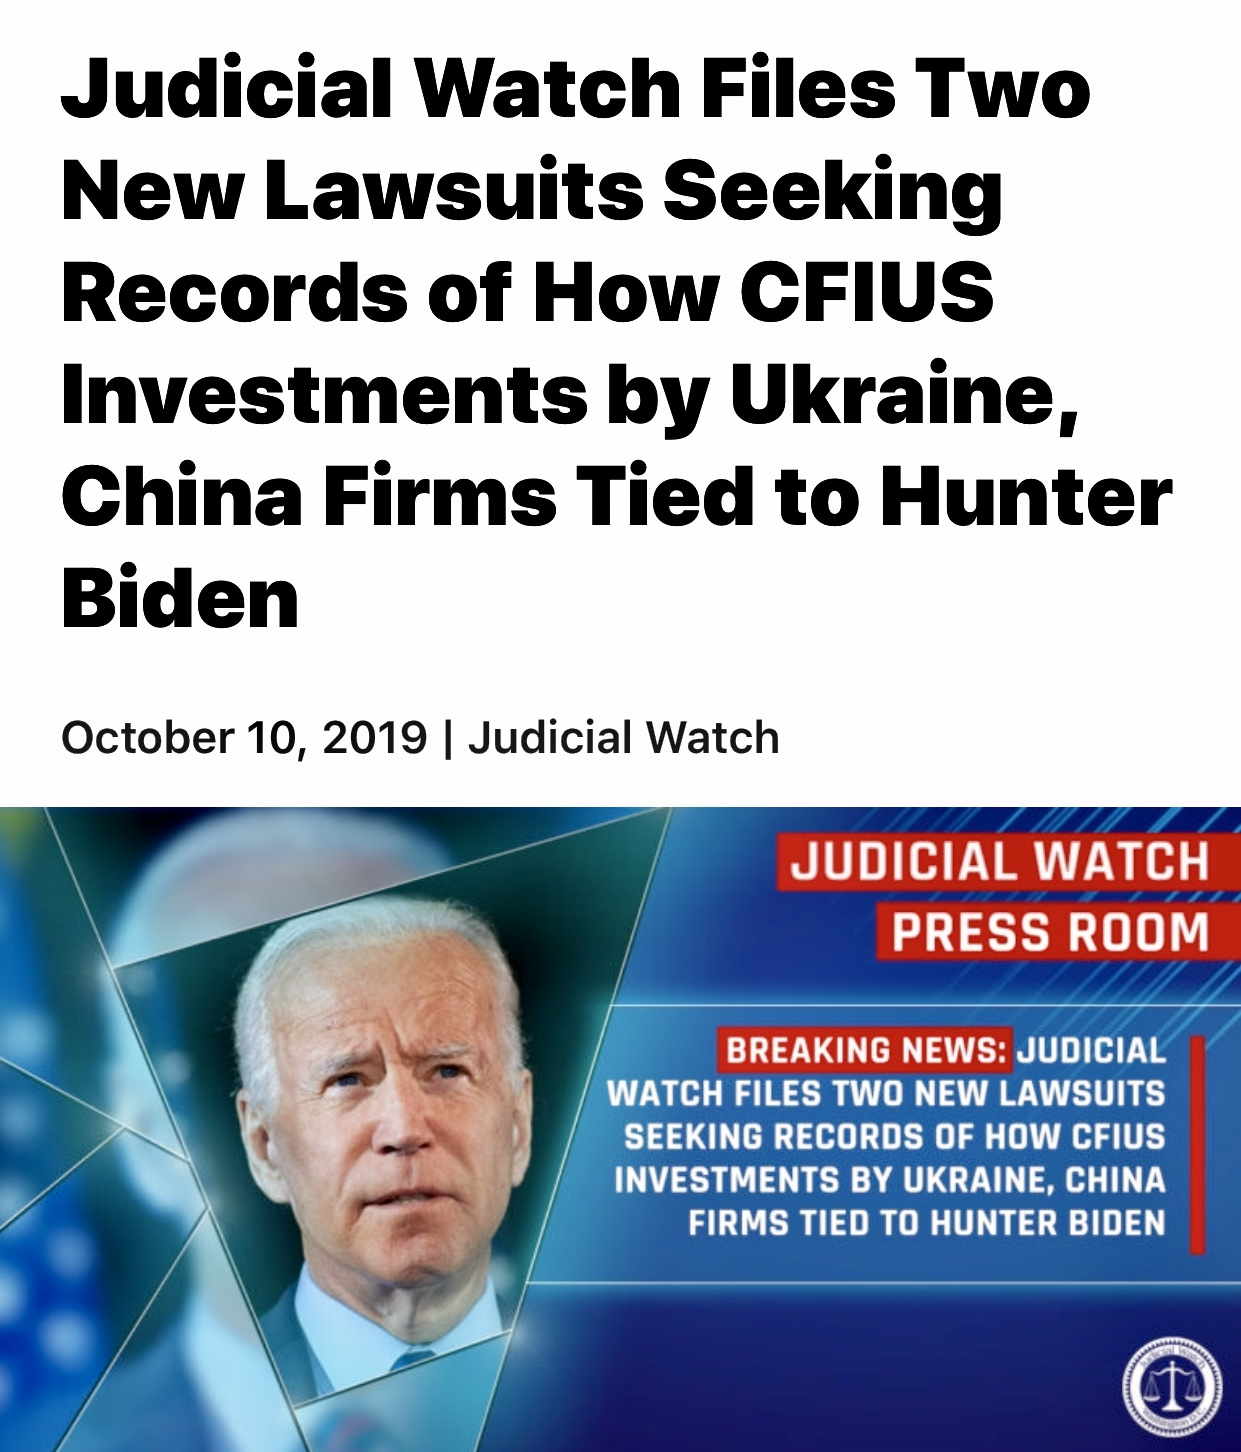 Judicial Watch Files 2  Lawsuits Seeking Records of How CFIUS Investments by Ukraine, China Firms Tied to Hunter Biden